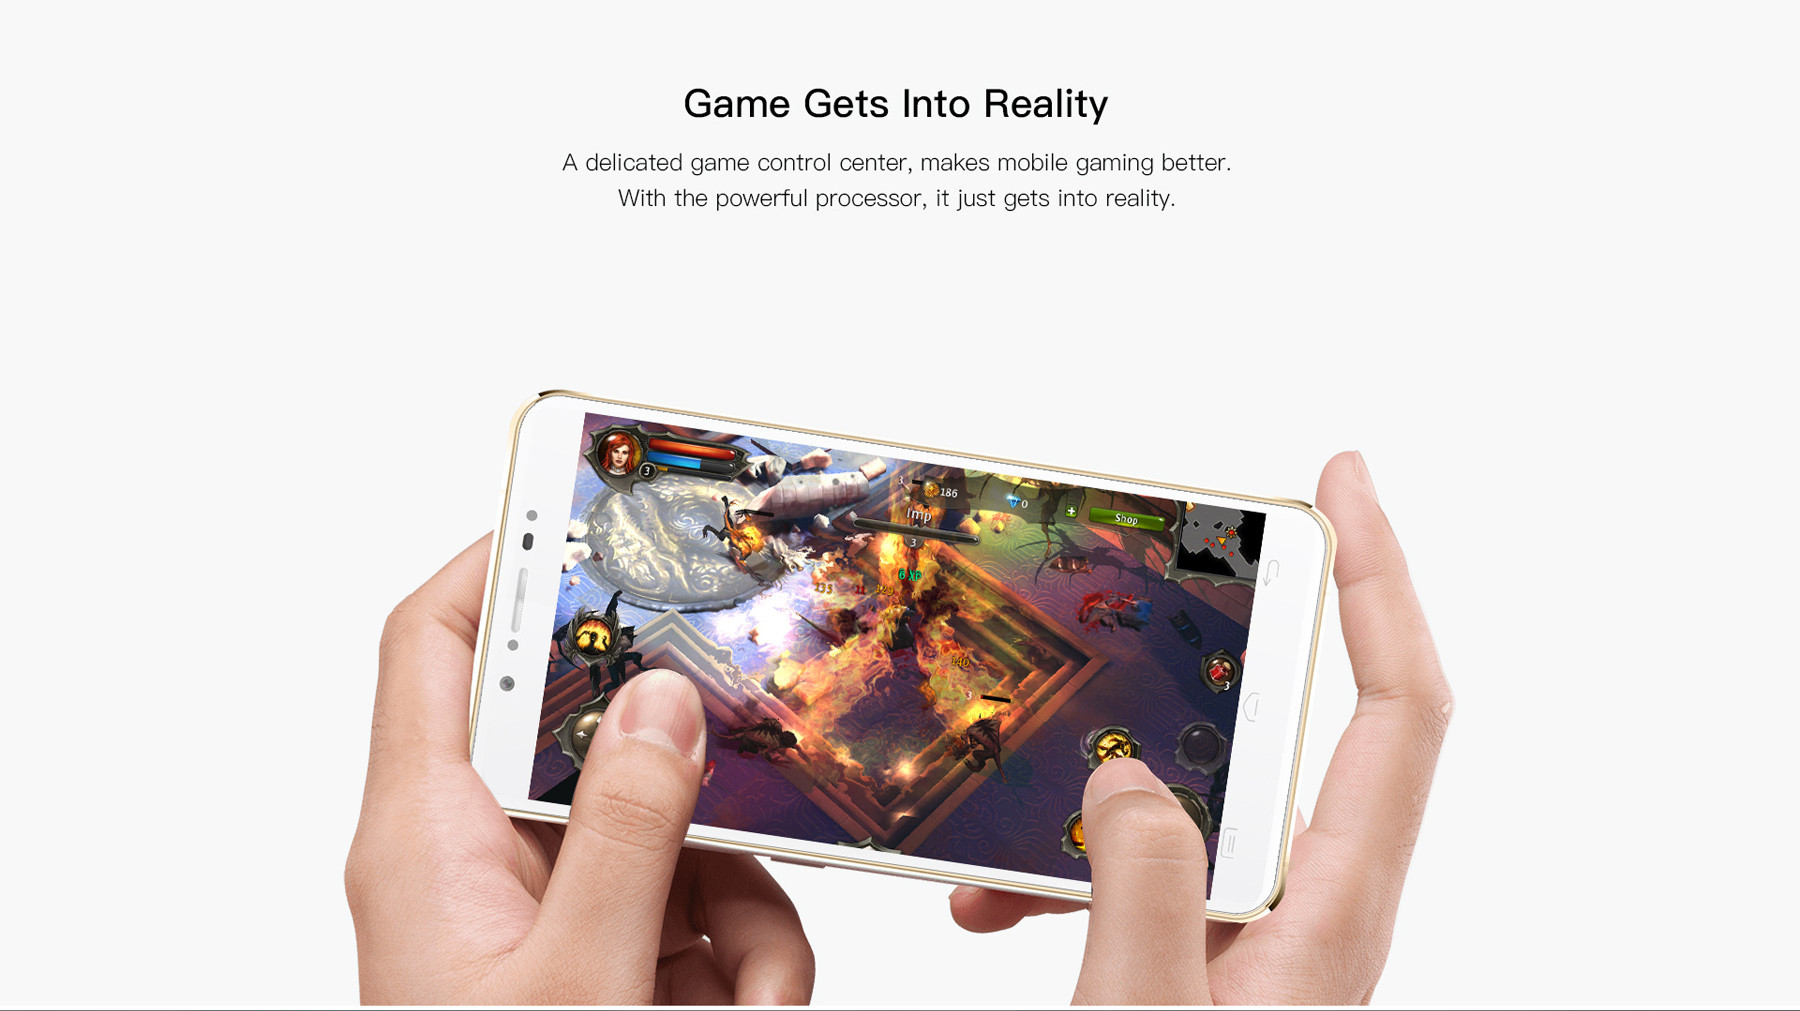 Doogee F7 Android 6.0 5.5 inch 4G Phablet Helio X20 2.3GHz Deca Core 3GB RAM 32GB ROM 13.0MP Rear Camera Bluetooth 4.0 Smart Gestures